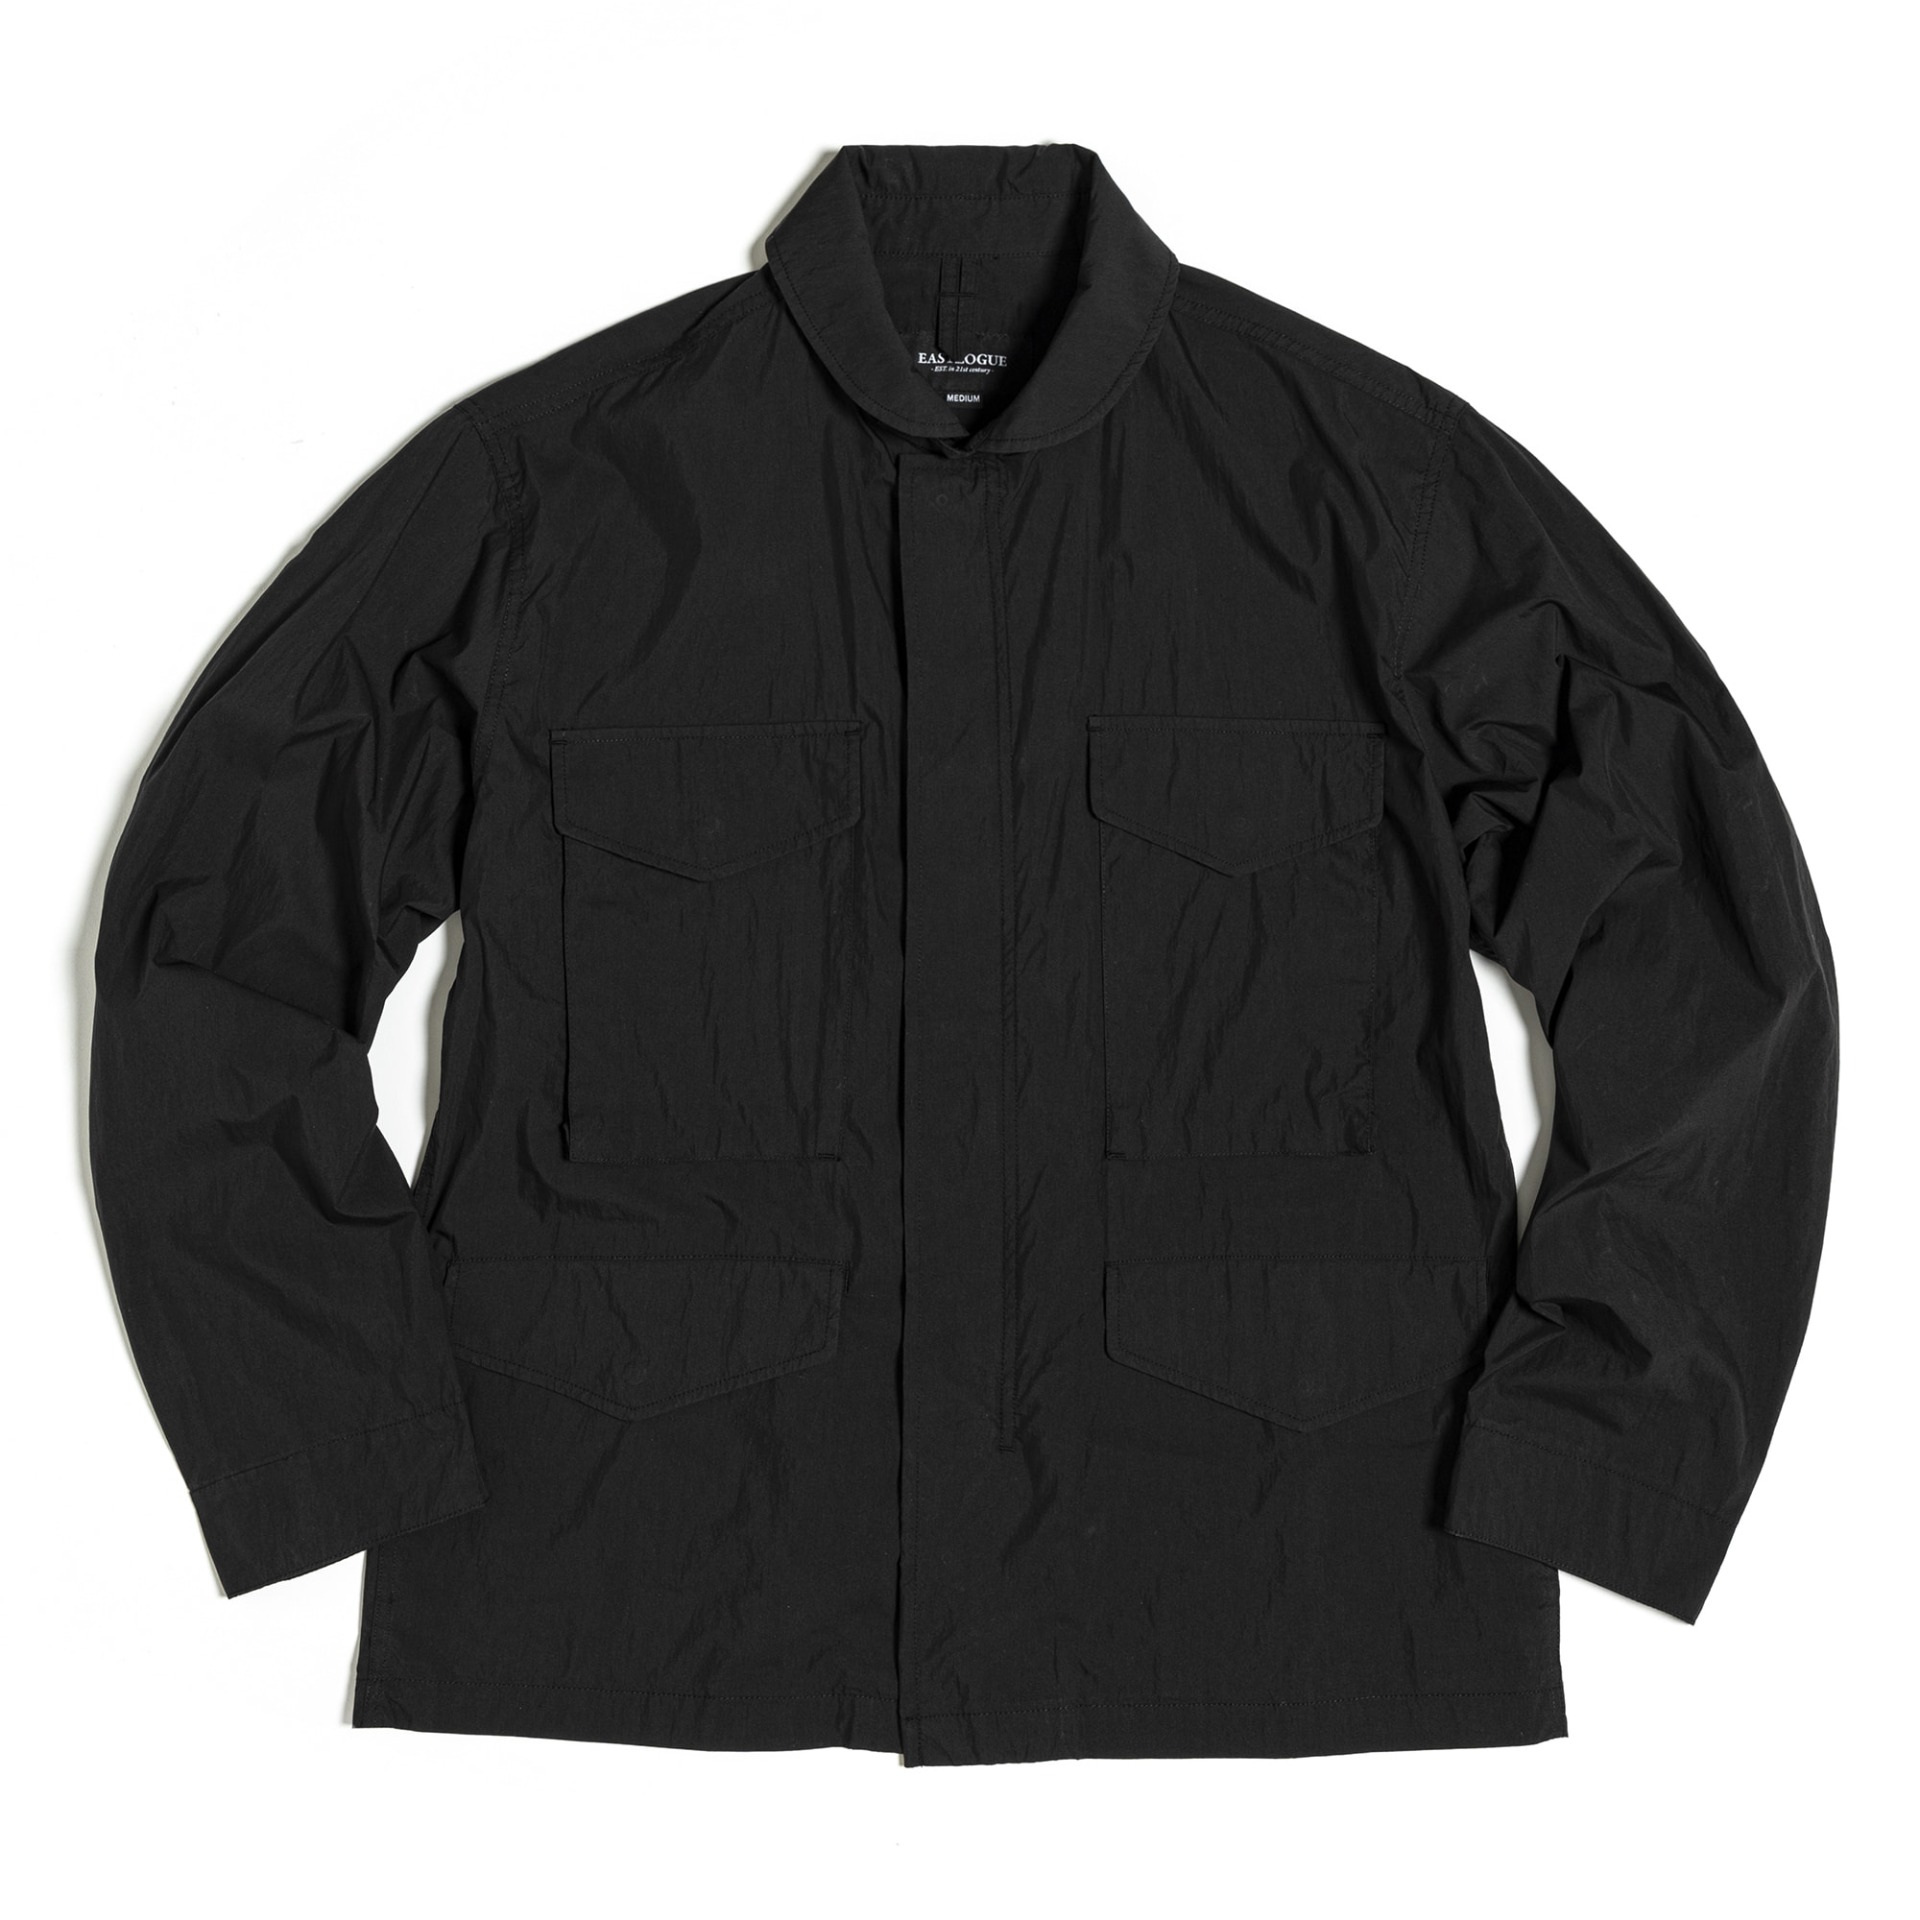 M21 FIELD JACKET (Black Washer)